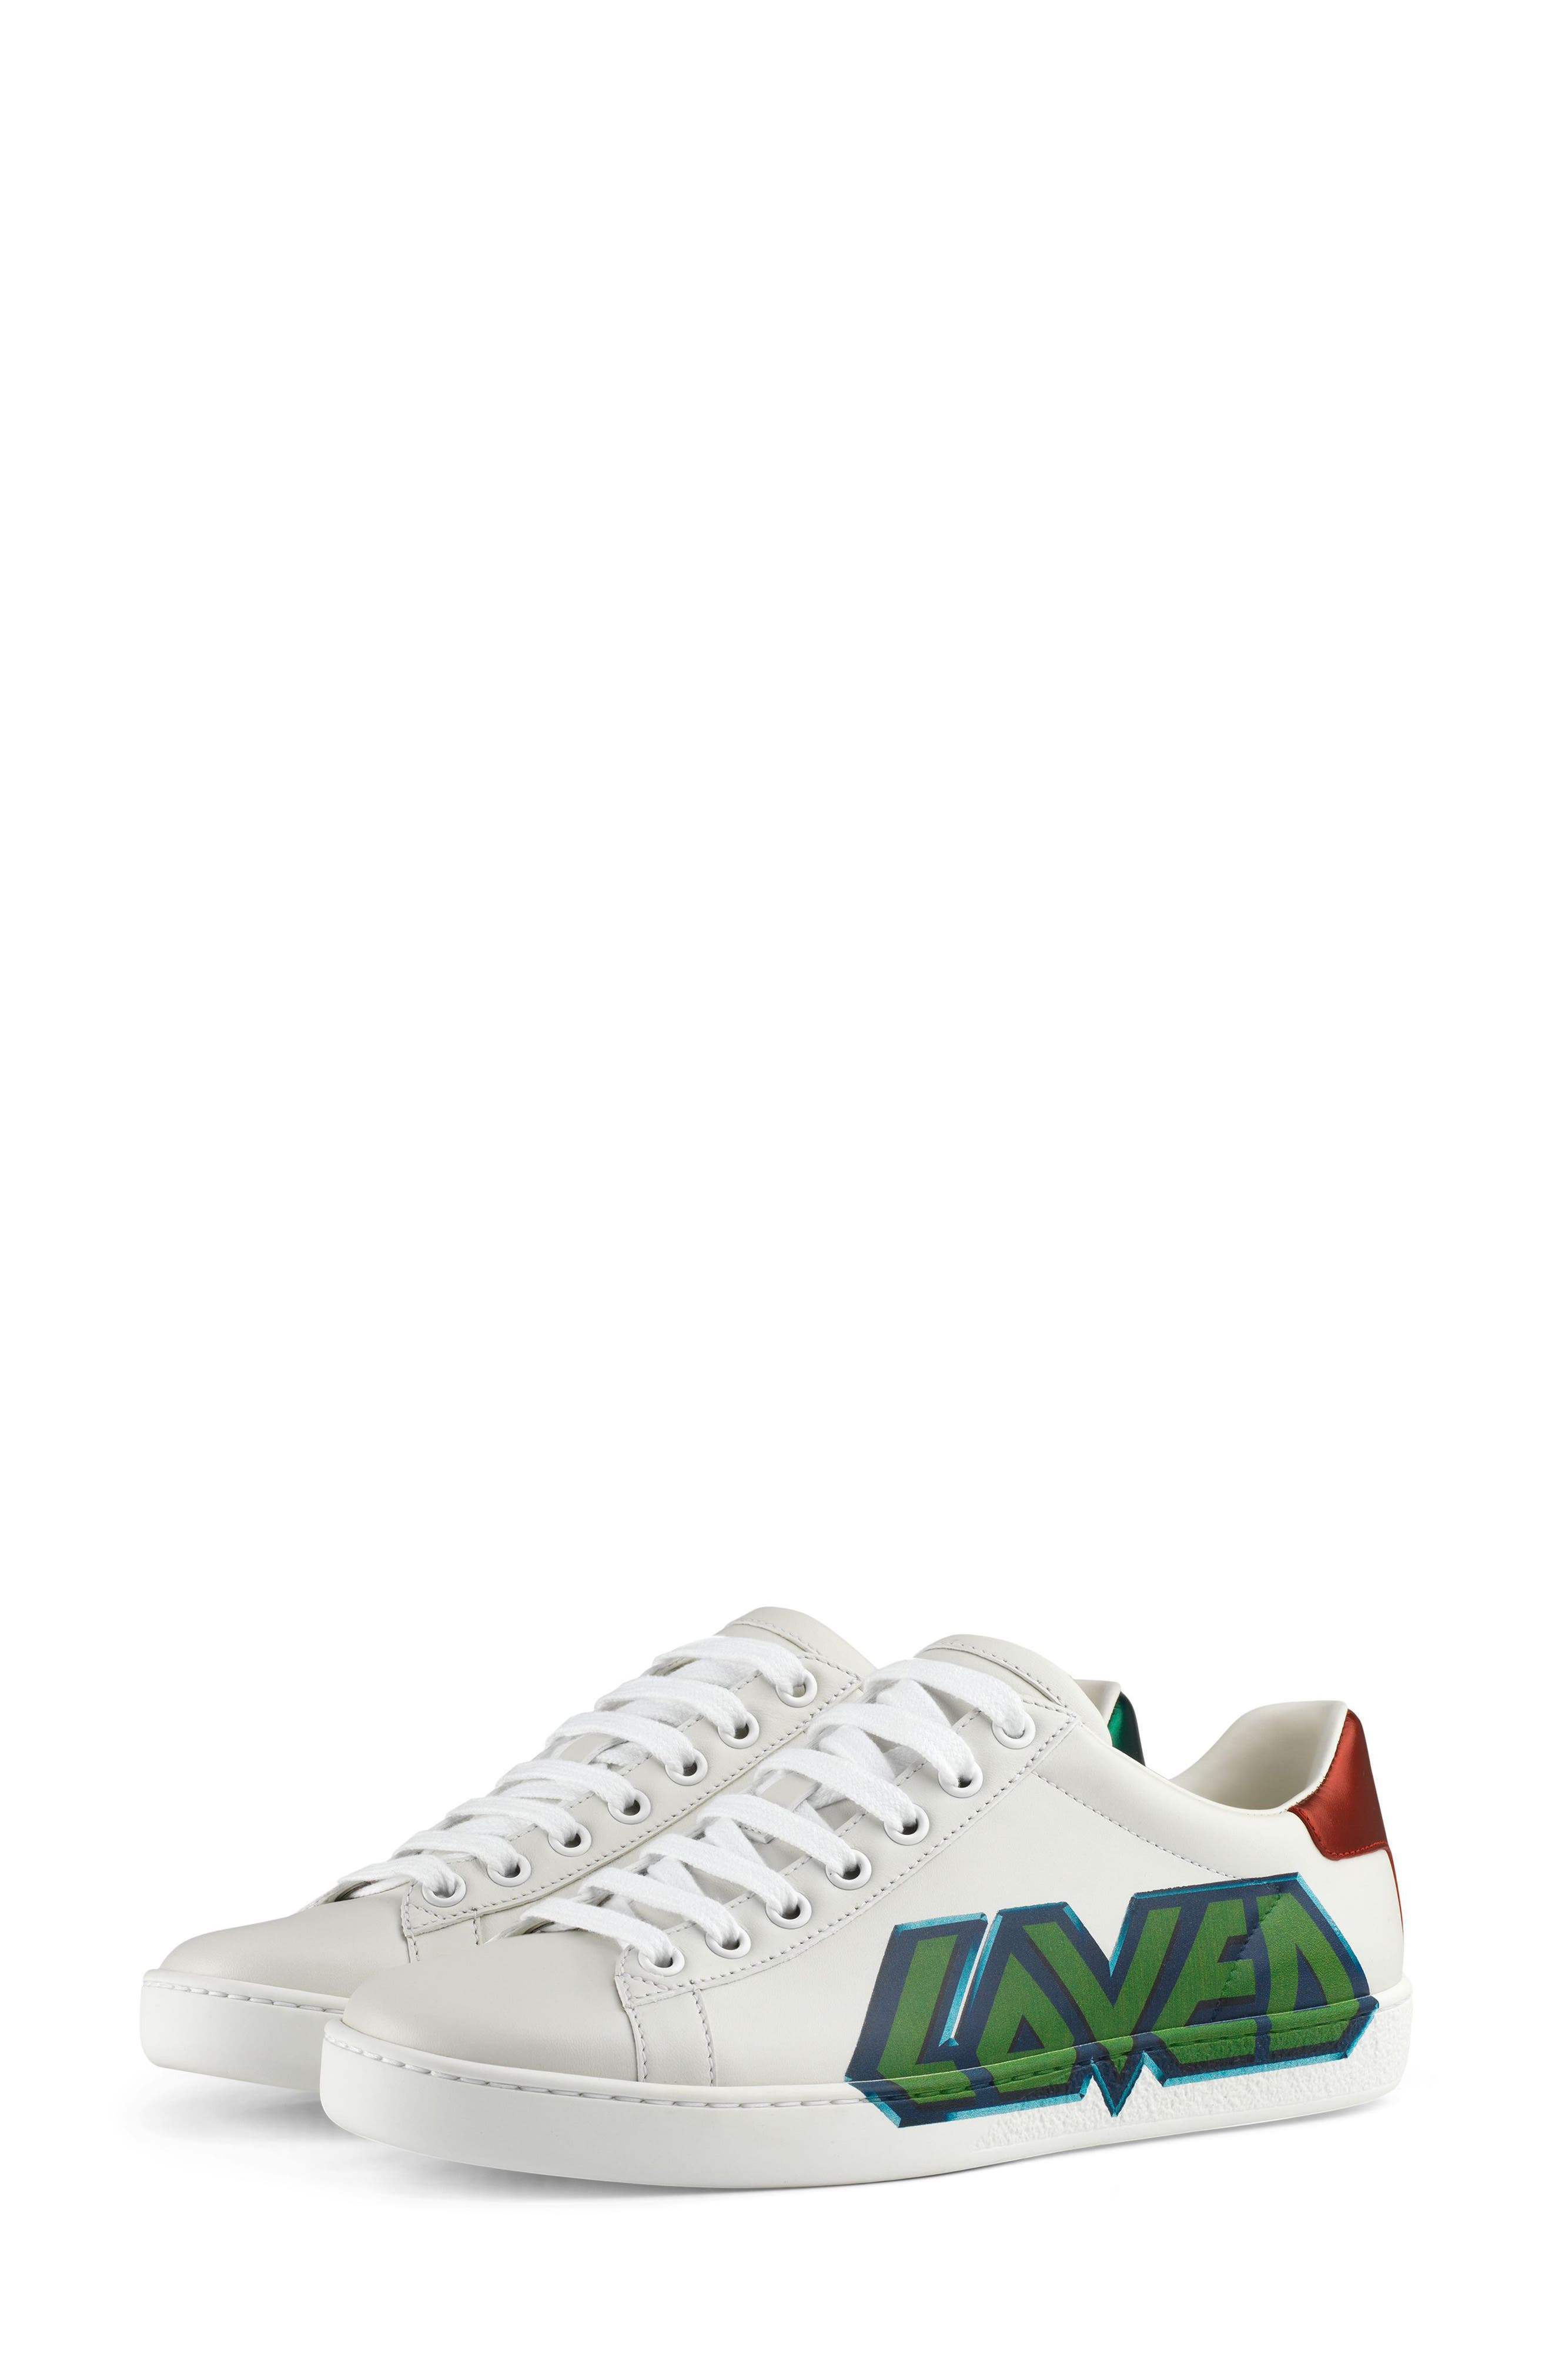 GUCCI,                             New Ace Loved Sneaker,                             Alternate thumbnail 6, color,                             WHITE